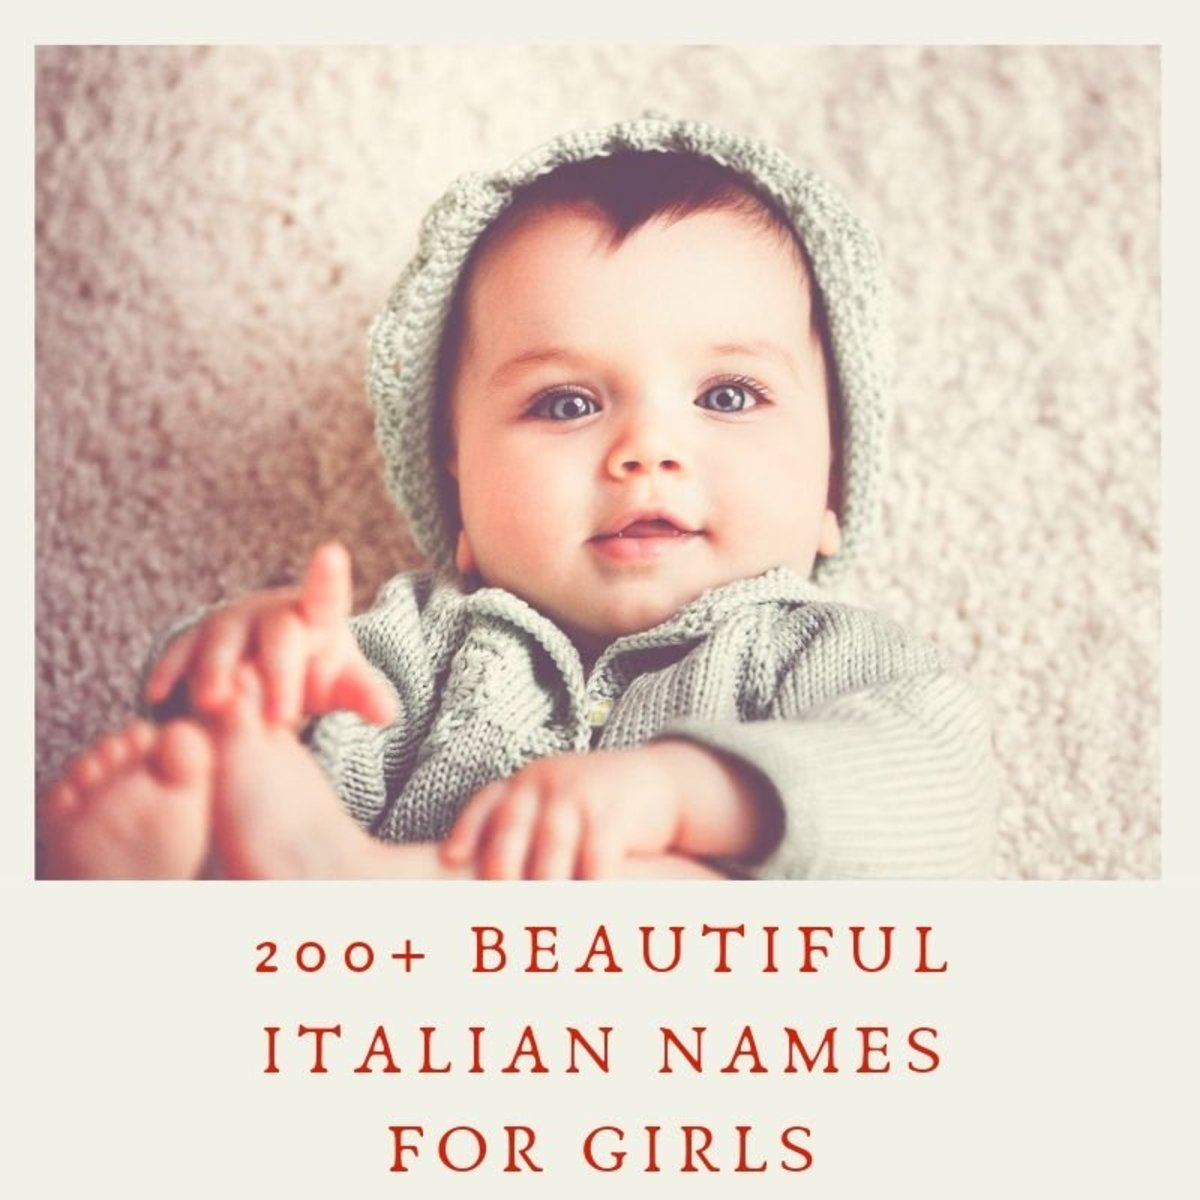 200+ Unique and Beautiful Italian Girl Names